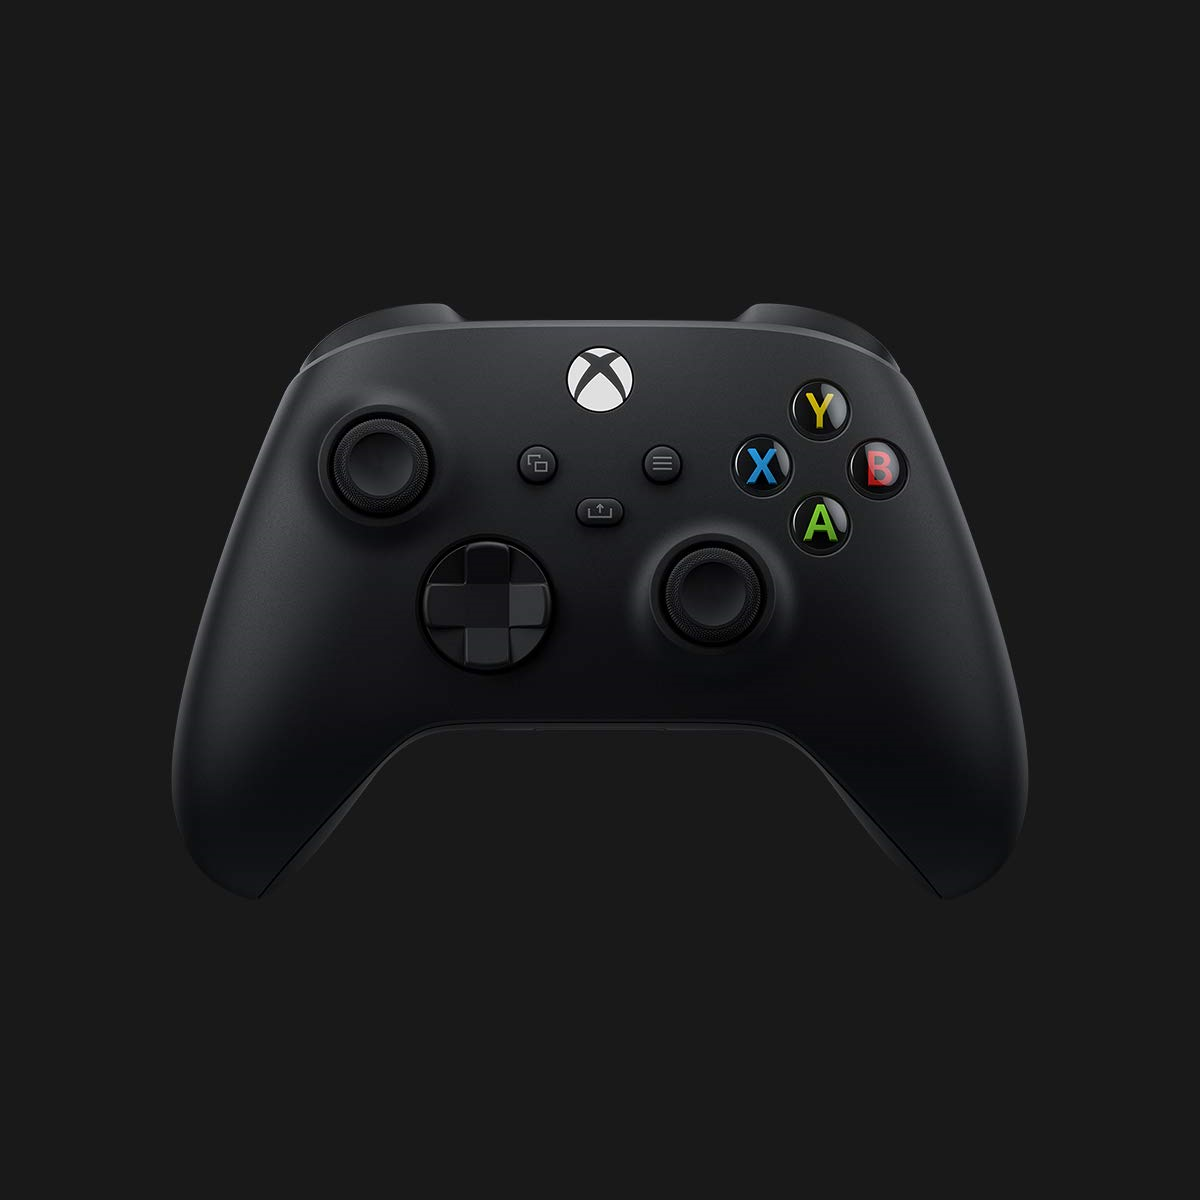 Main picture of the Xbox Series X controller